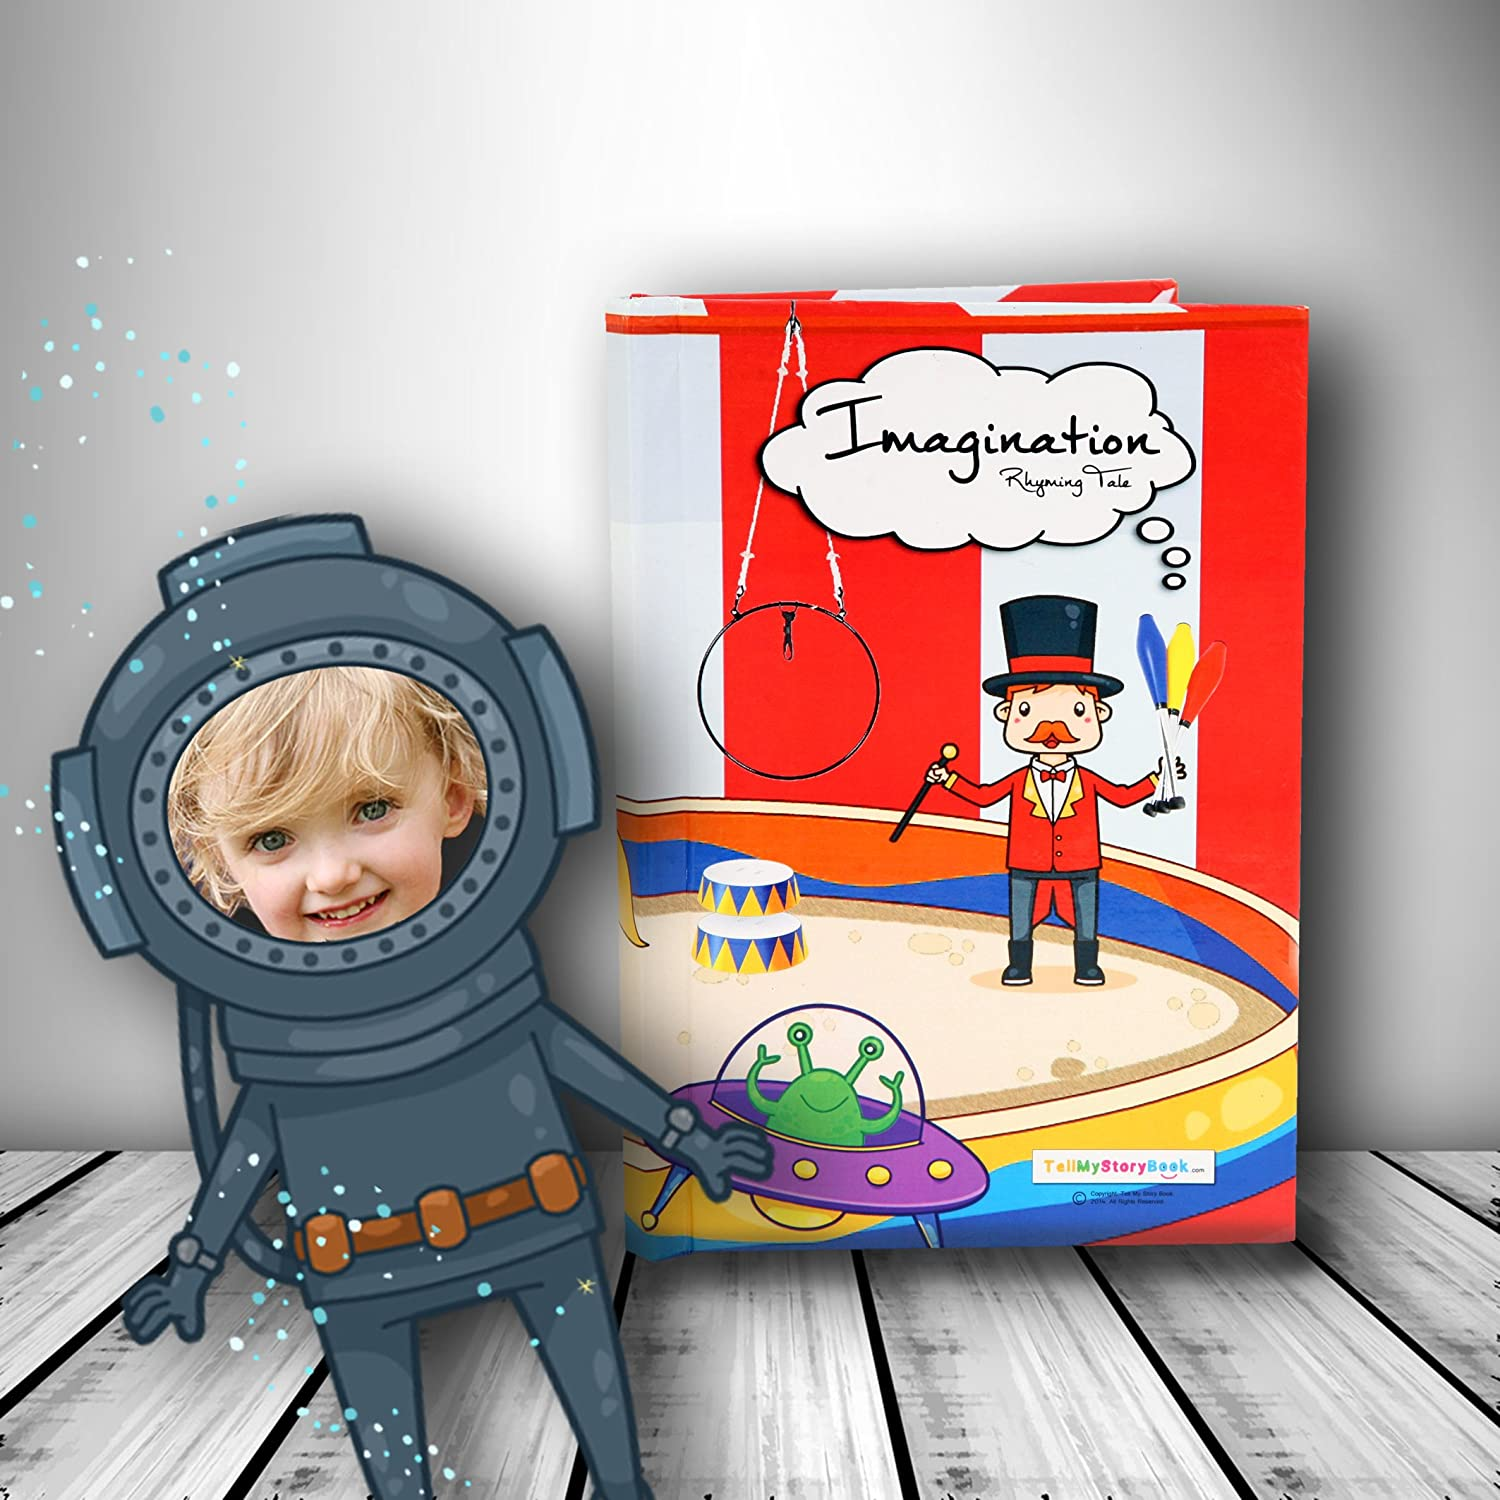 Hardback Personalised Children's Book using Your Child's Photo as the main character of the book!'Imagination' girls version Tellmystorybook Ltd Imagination girls version